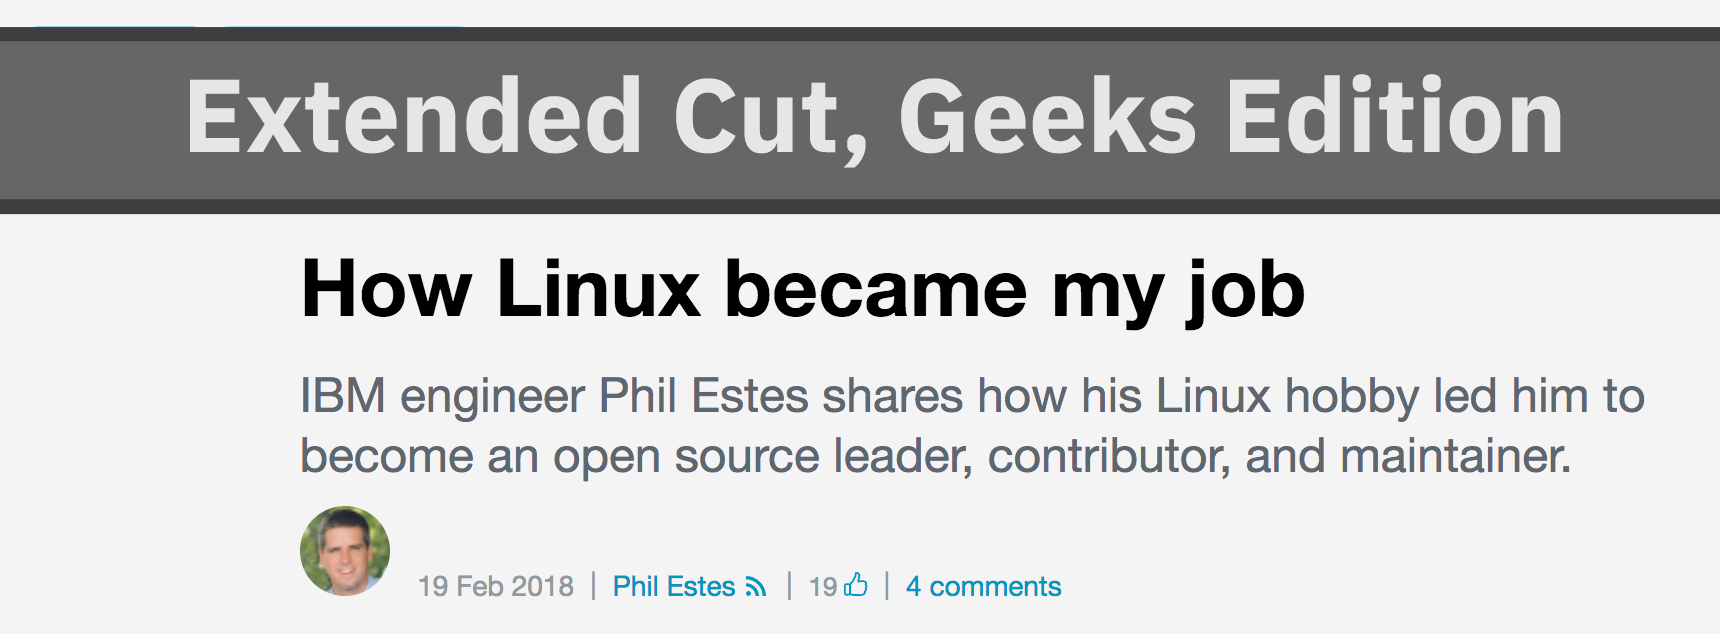 """How Linux Became My Job"""": Extended Cut, Geeks Edition"""